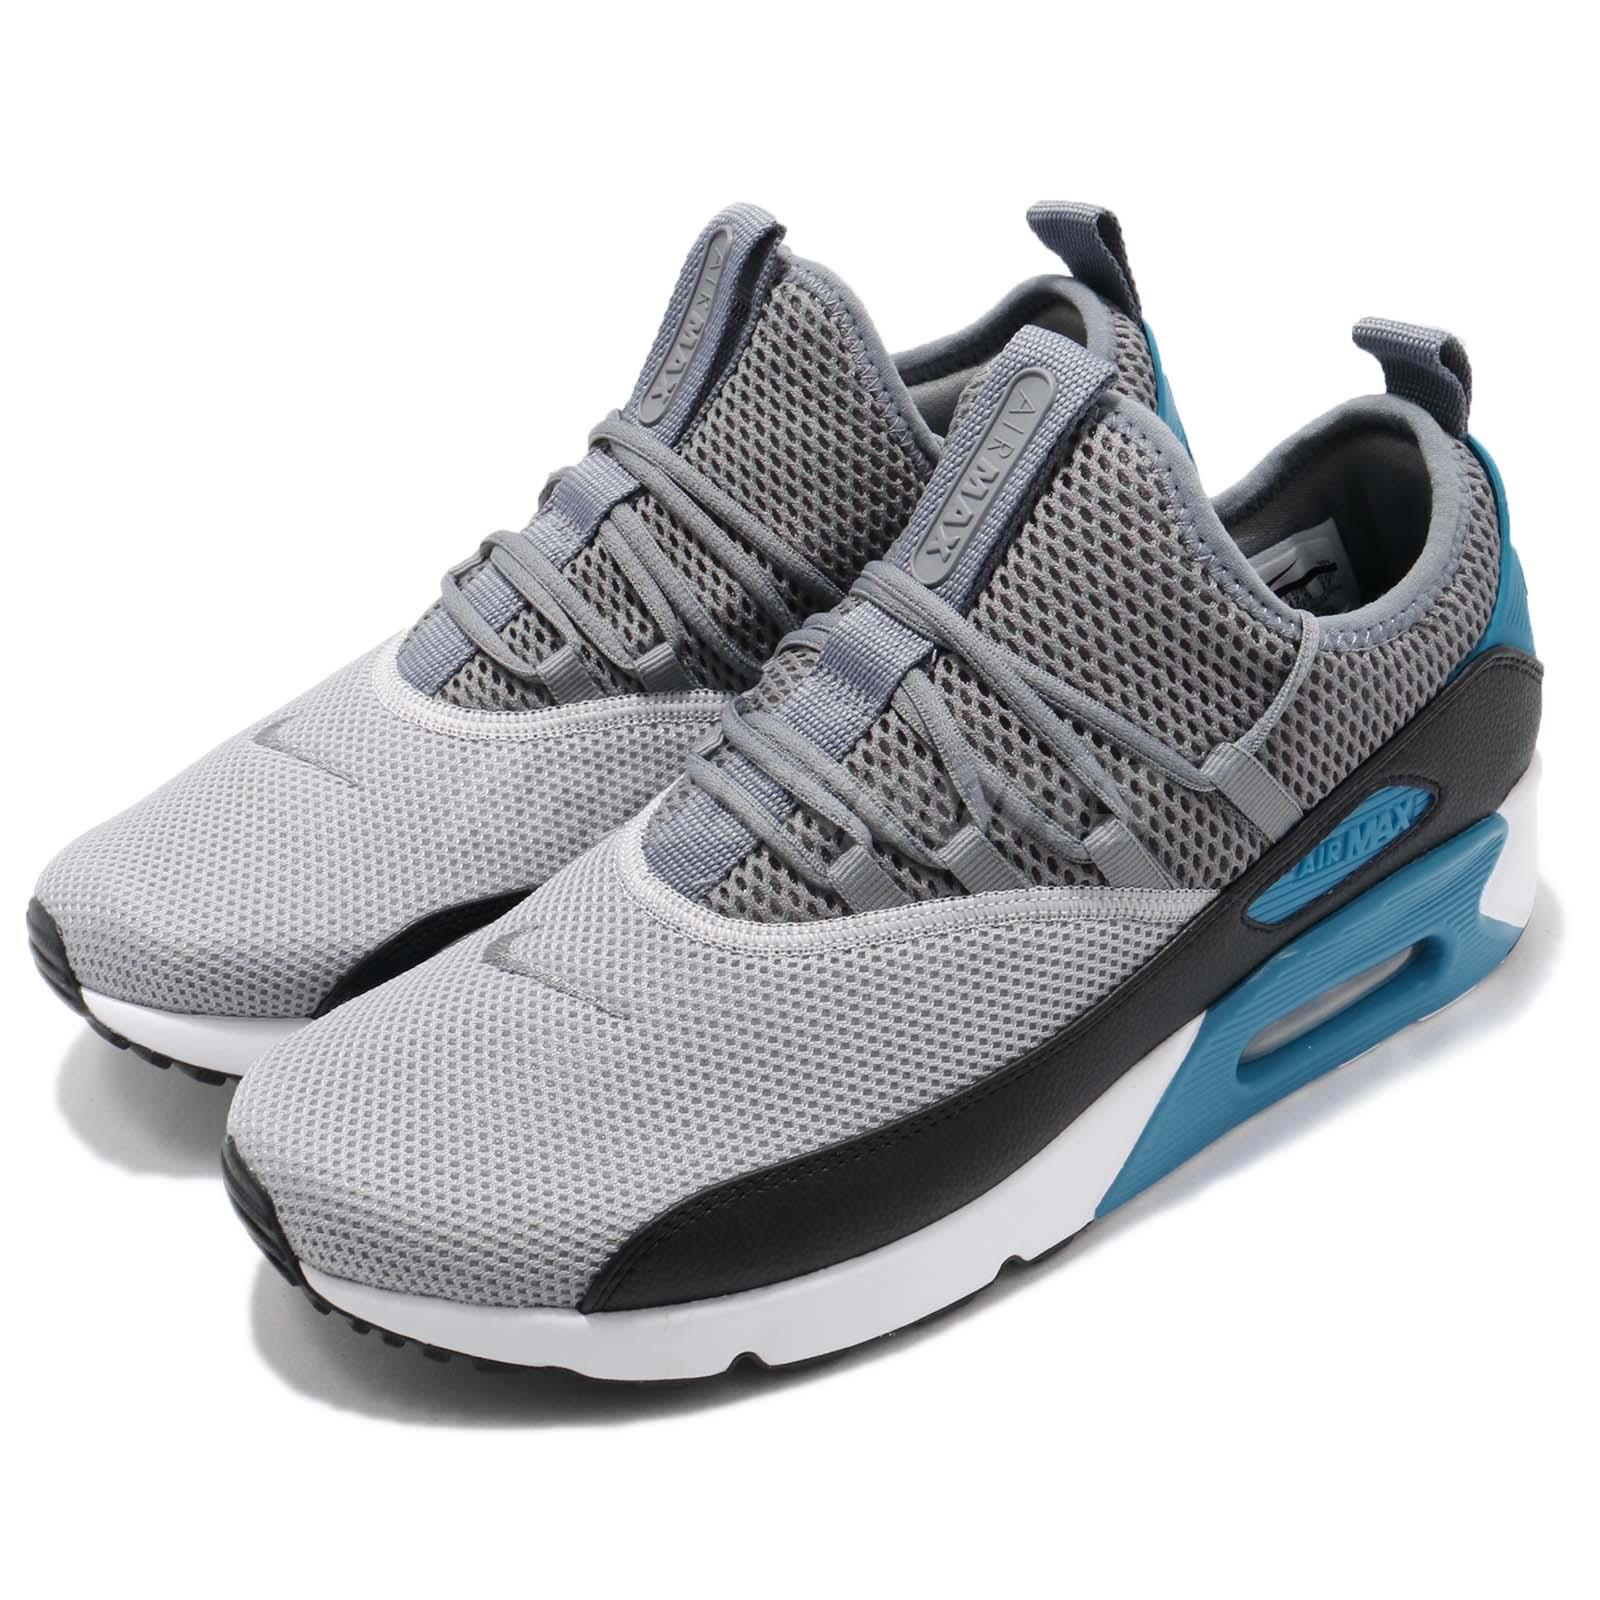 superior quality 64384 f1389 Details about Nike Air Max 90 EZ Ease Wolf Grey Black Men Running Shoes  Sneakers AO1745-004